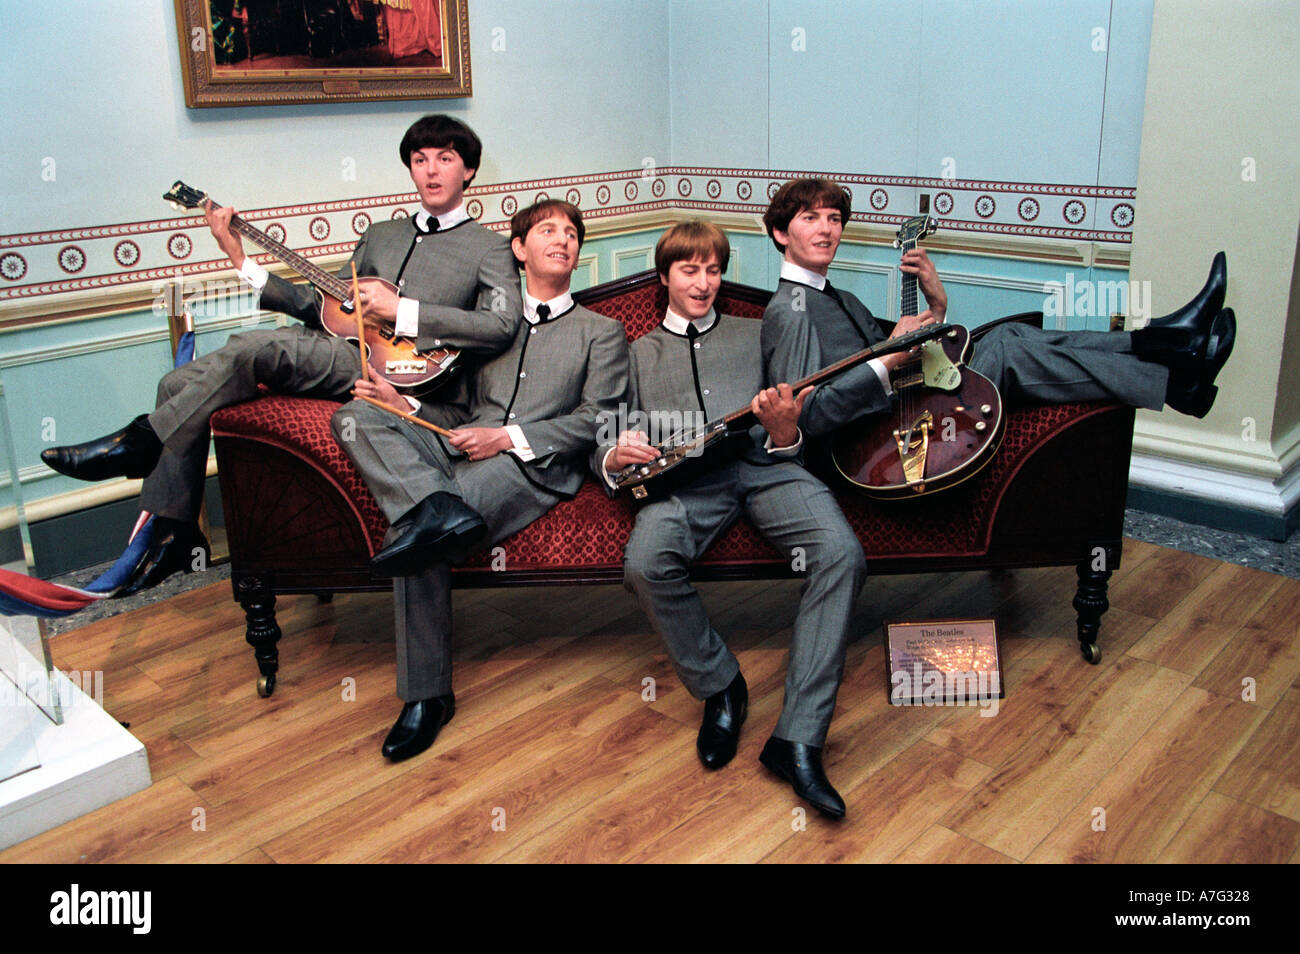 Beatles en el Madame Tussauds London Imagen De Stock